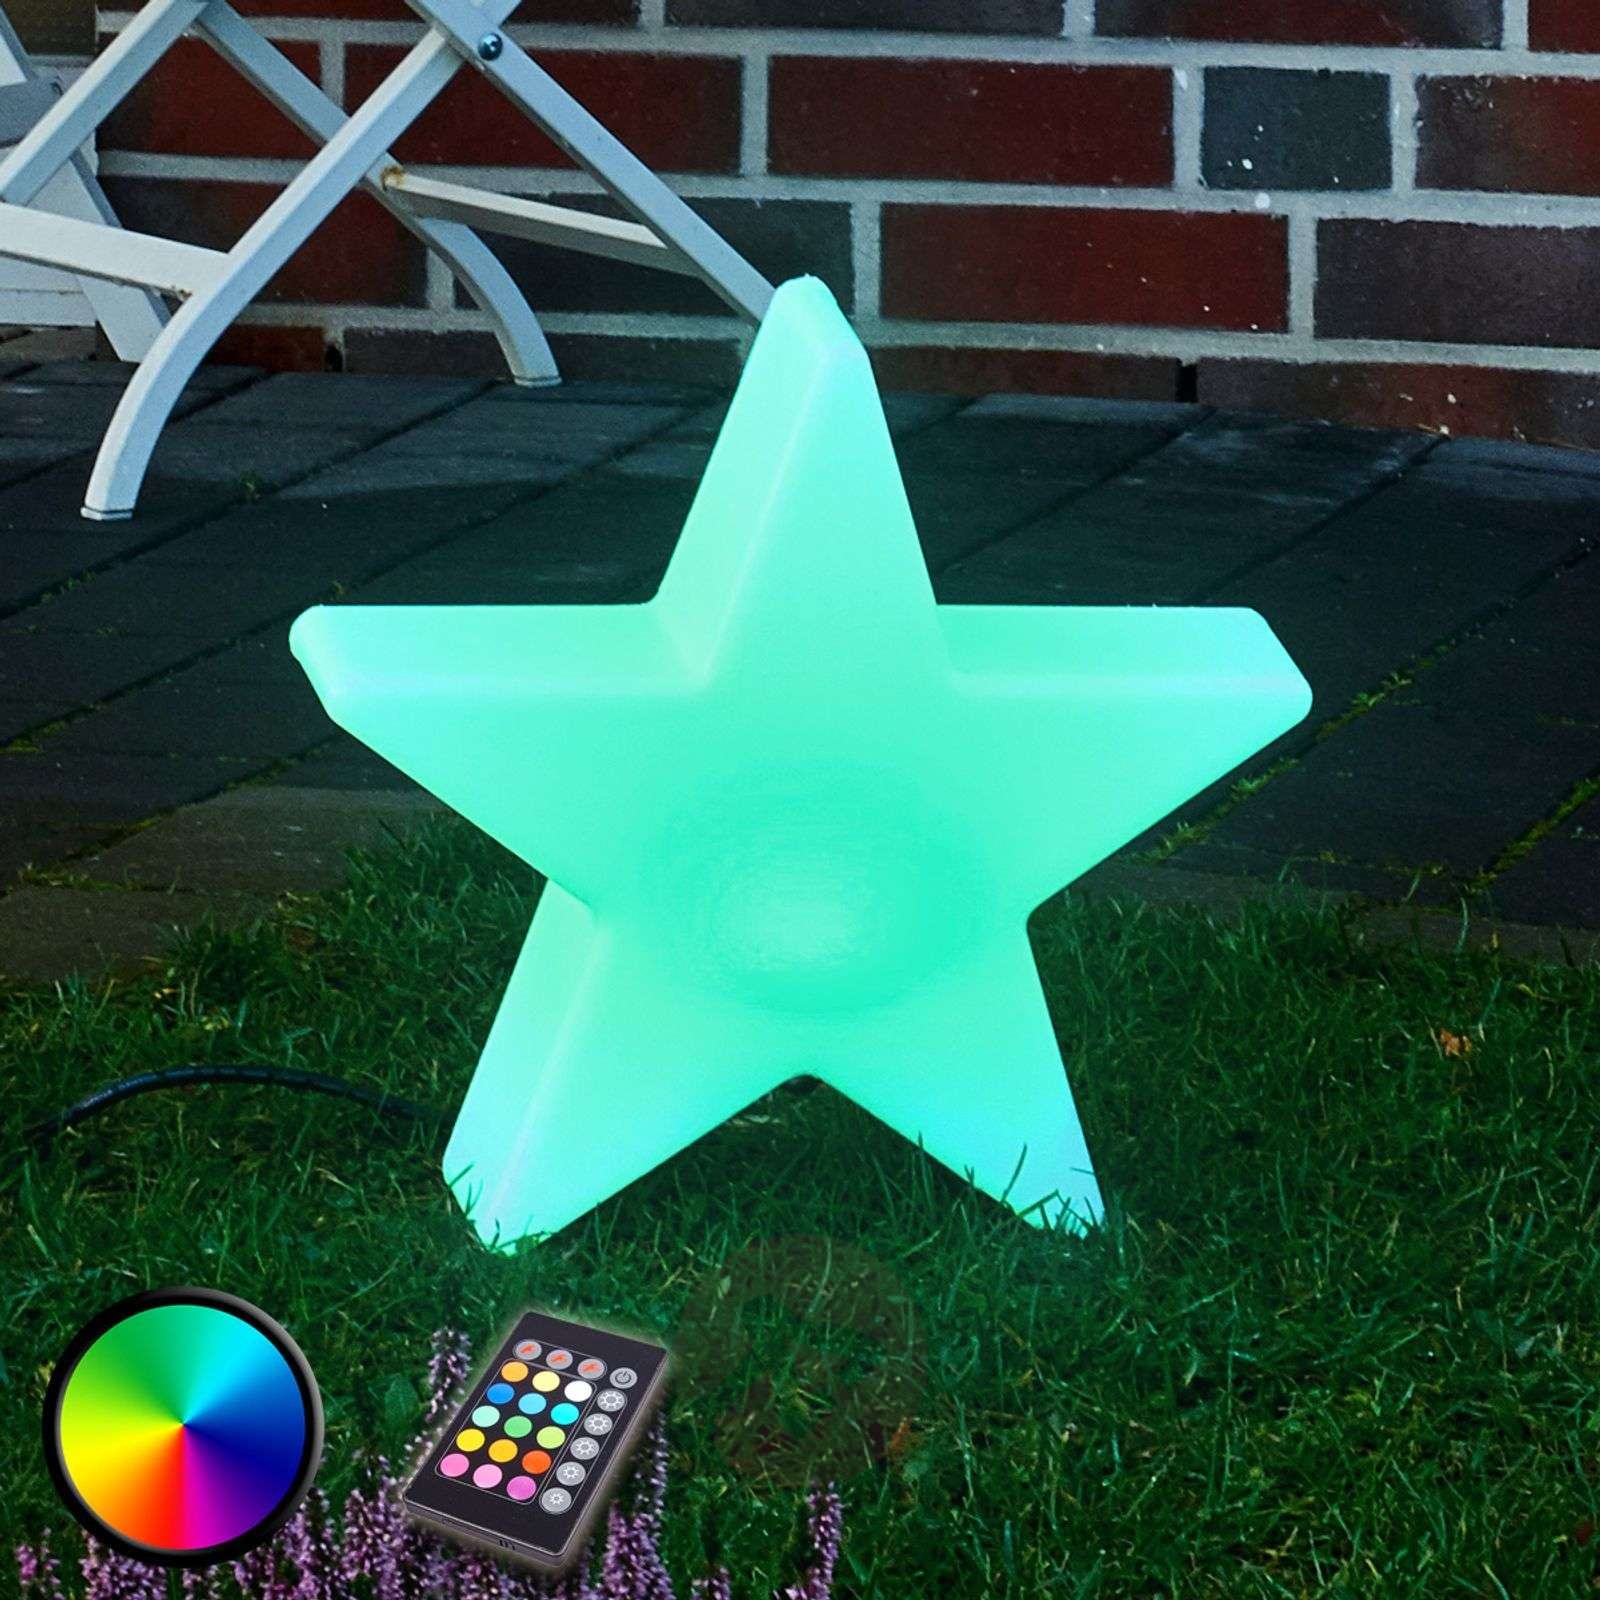 Shining Star 100 LED-buitendecoratielamp RGB 1-1004080-01